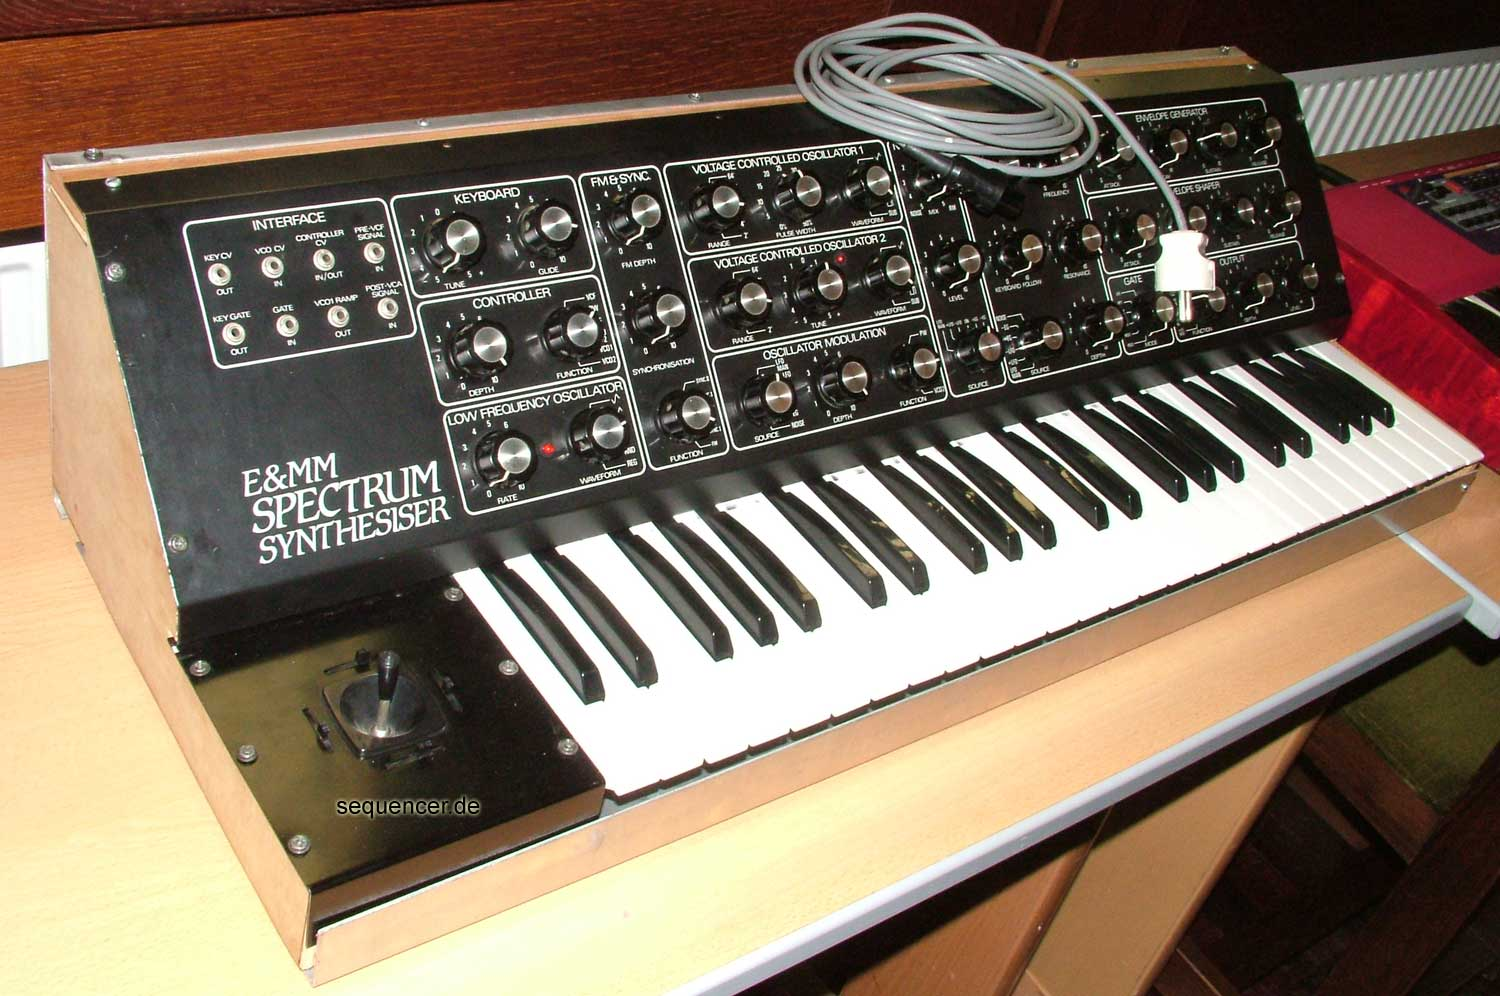 E and MM Spectrum Synthesizer synthesizer